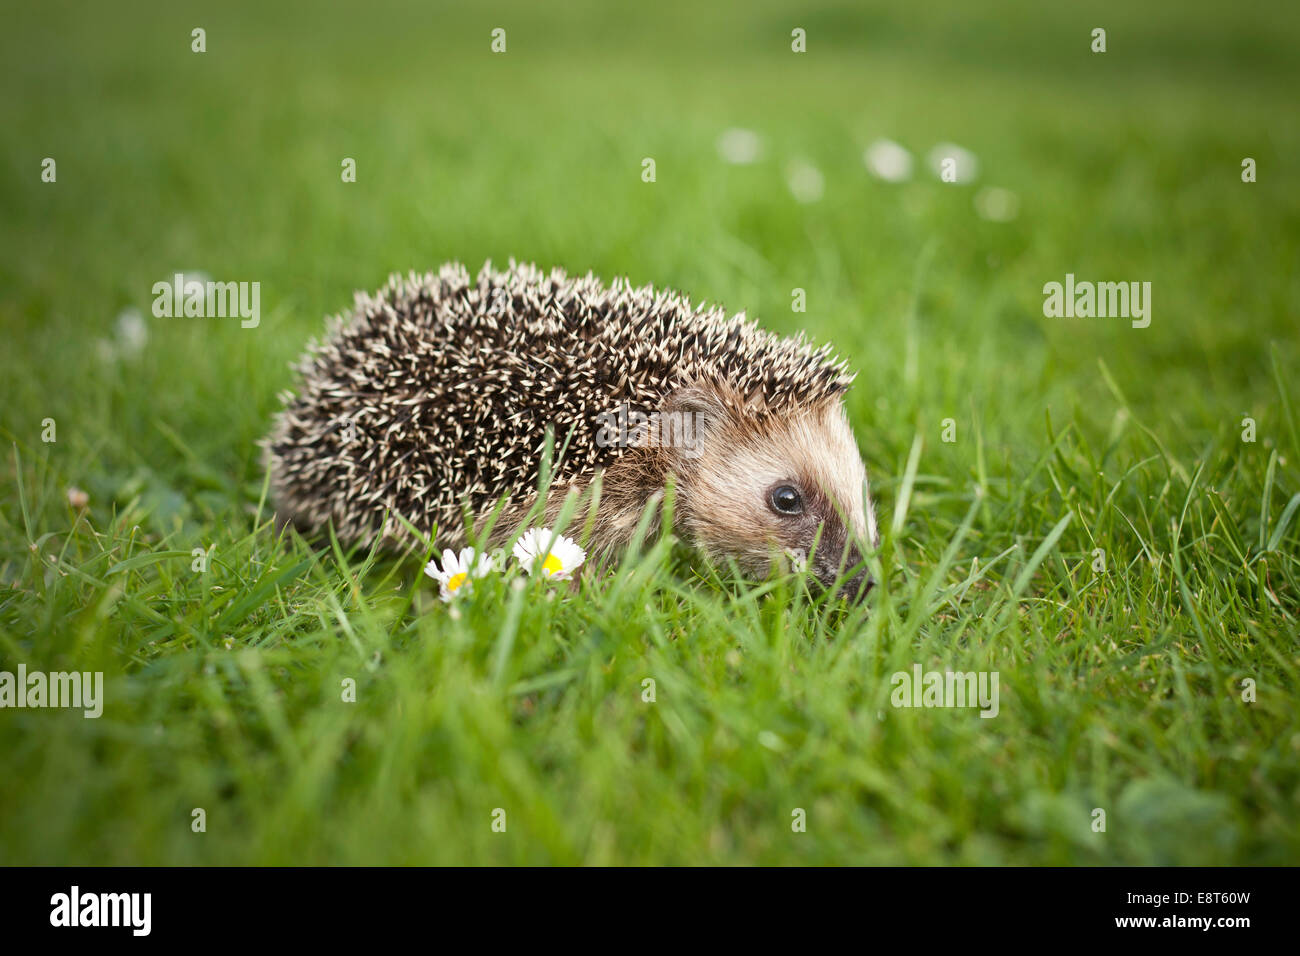 Young hedgehog (Erinaceus europaeus) in a meadow - Stock Image